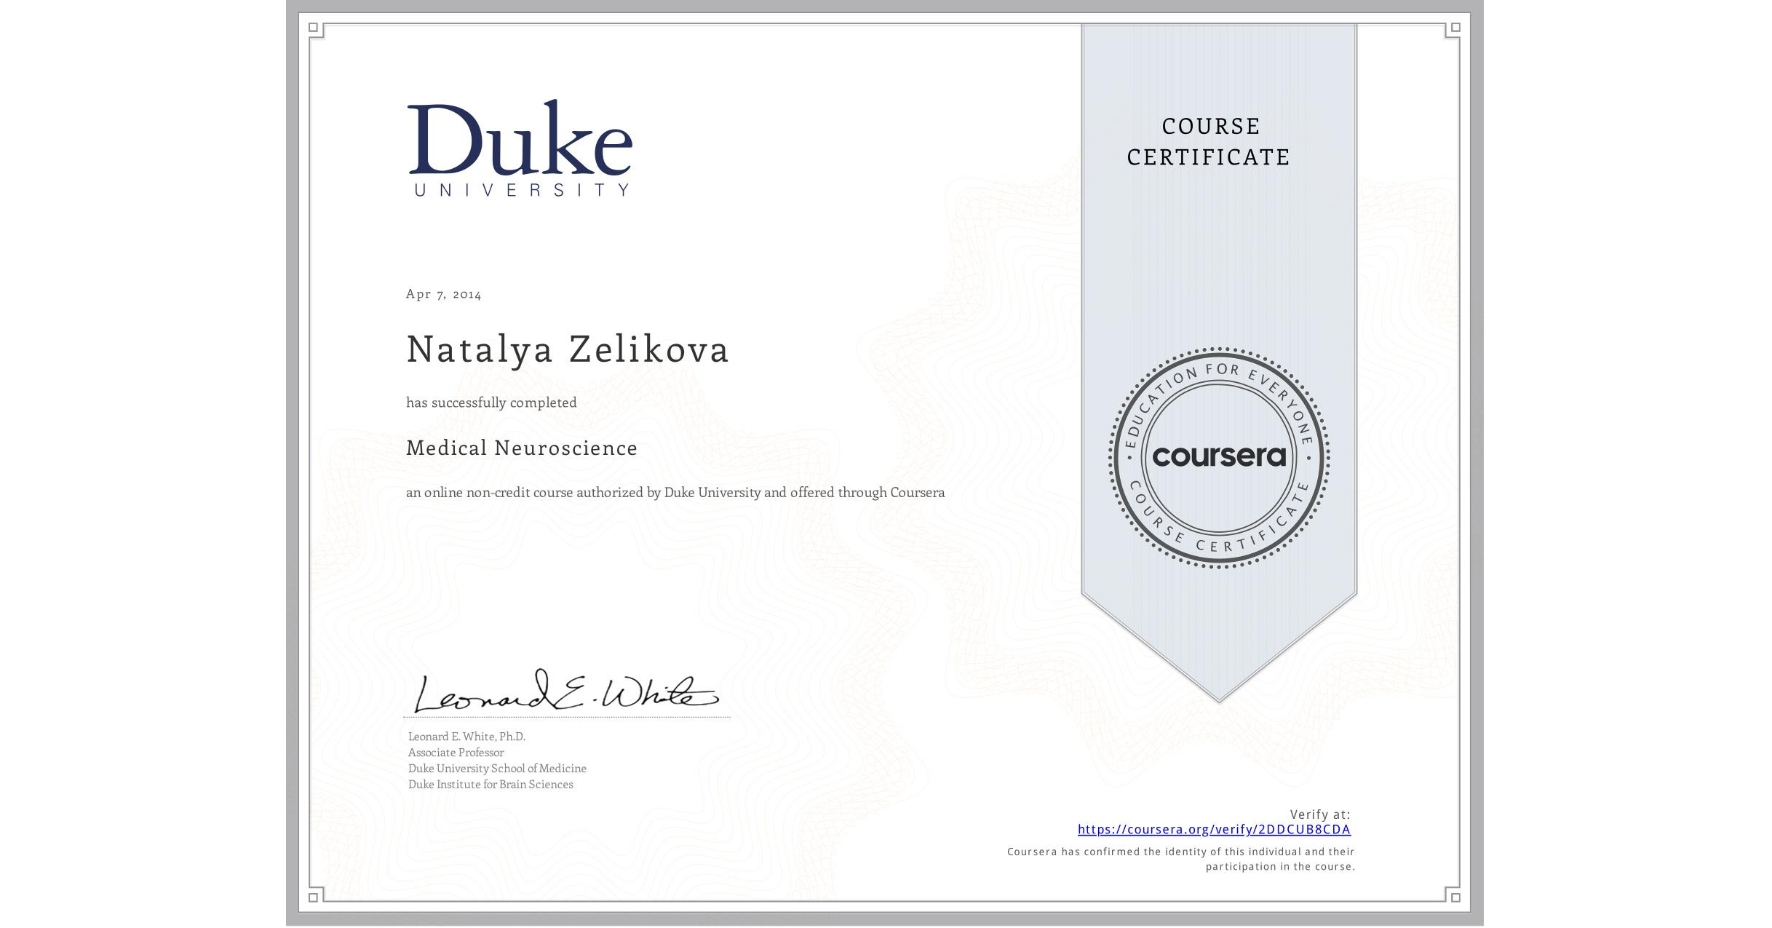 View certificate for Natalya Zelikova, Medical Neuroscience, an online non-credit course authorized by Duke University and offered through Coursera